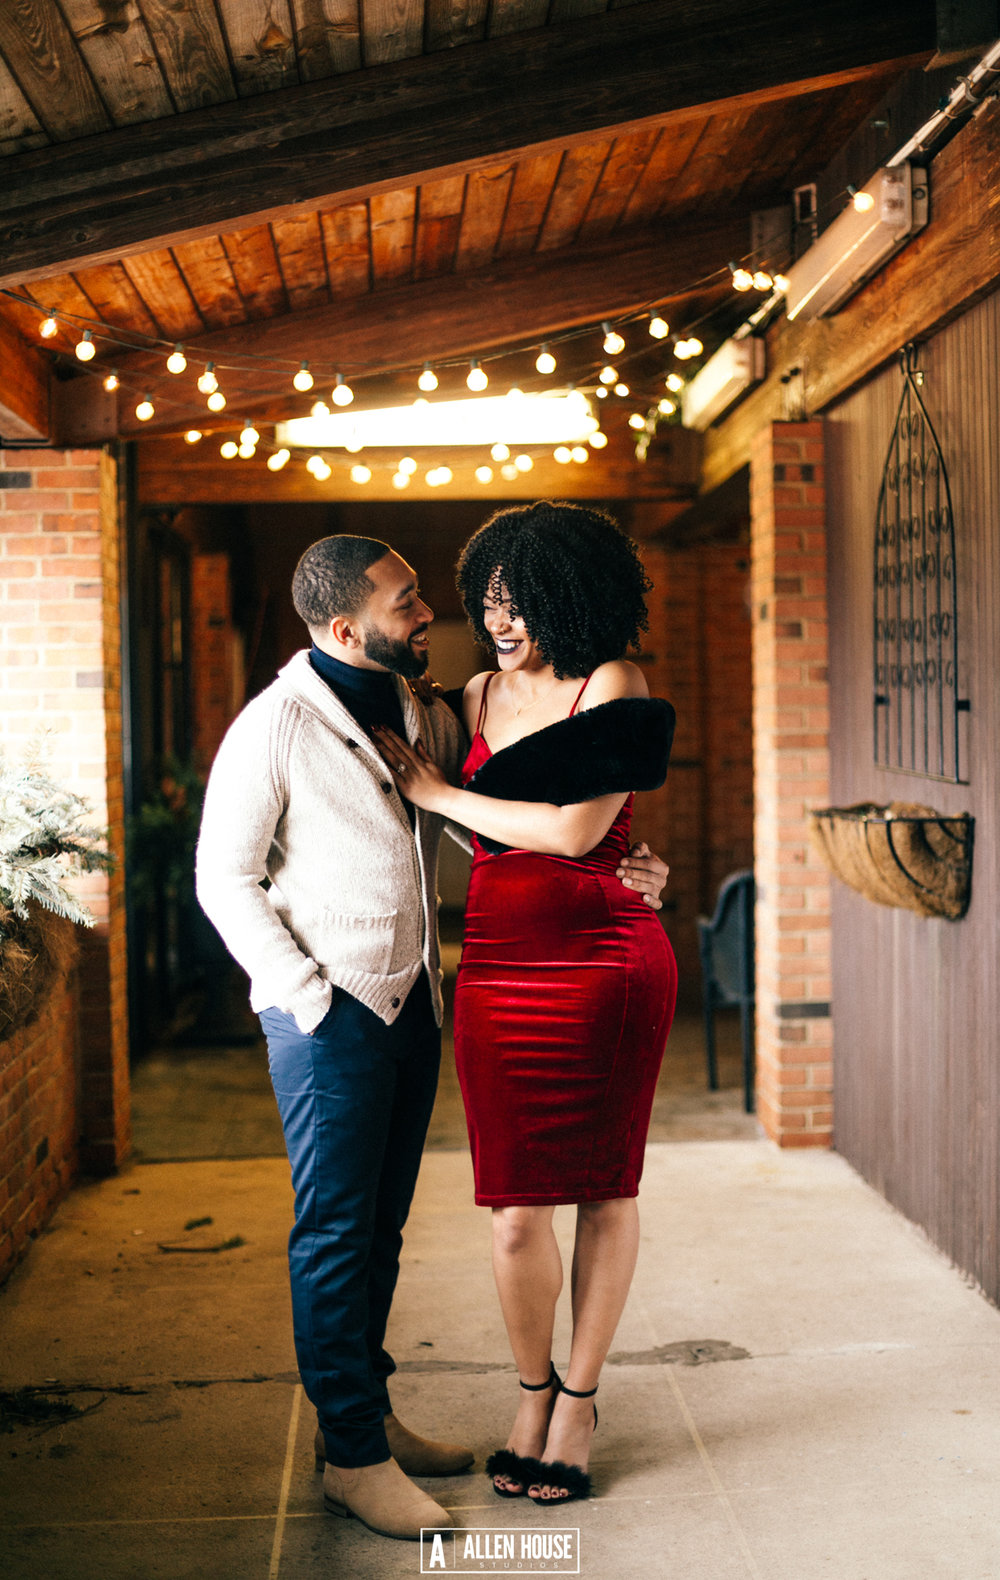 Butterflies in your stomach + smiles on your face - Every engagement session should be unique to the couple. Whether we go to the school where you first met, where you had your first date, or just a breathtaking location with your fiancé. These photos will capture this piece of your journey as a couple.